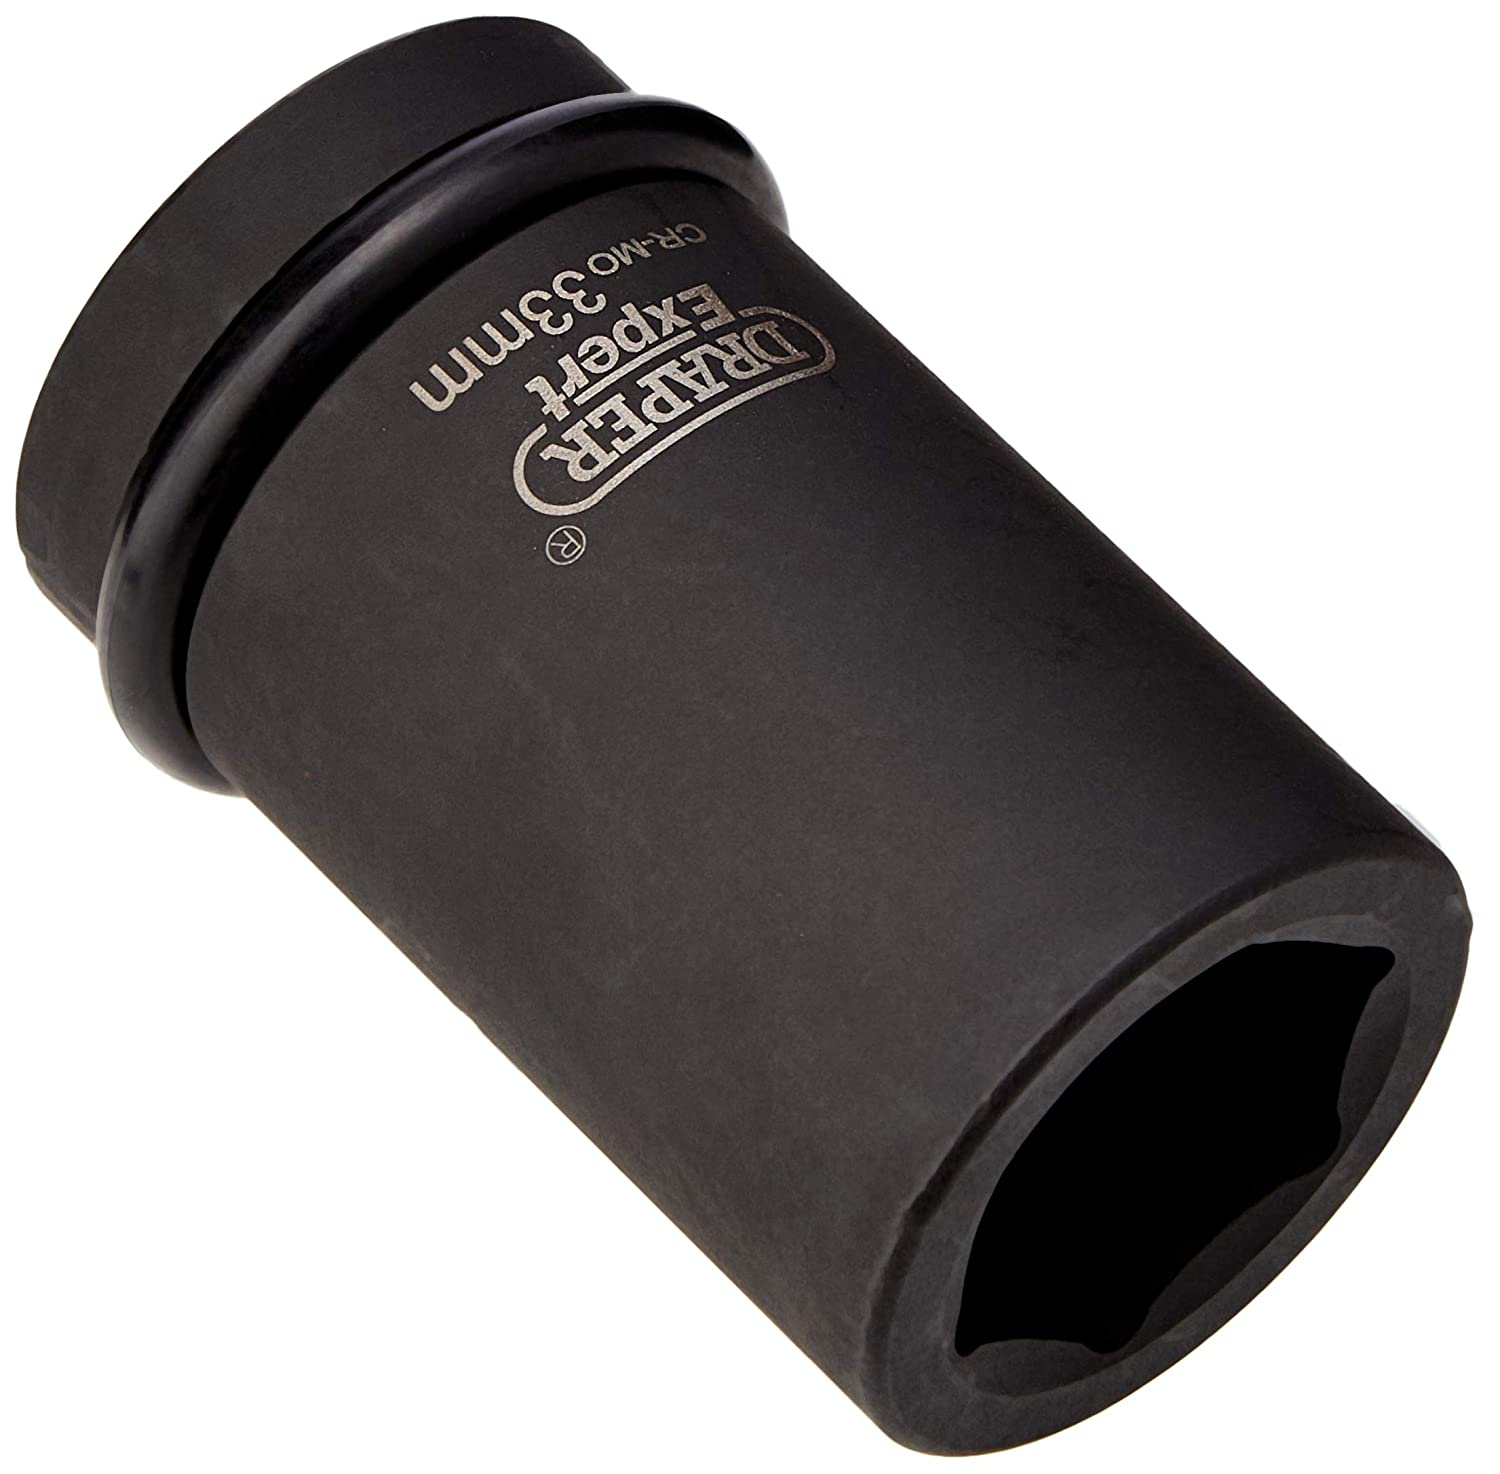 Draper Expert 5151 38mm 1-inch Square Drive Hi-Torq 6-Point Deep Impact Socket